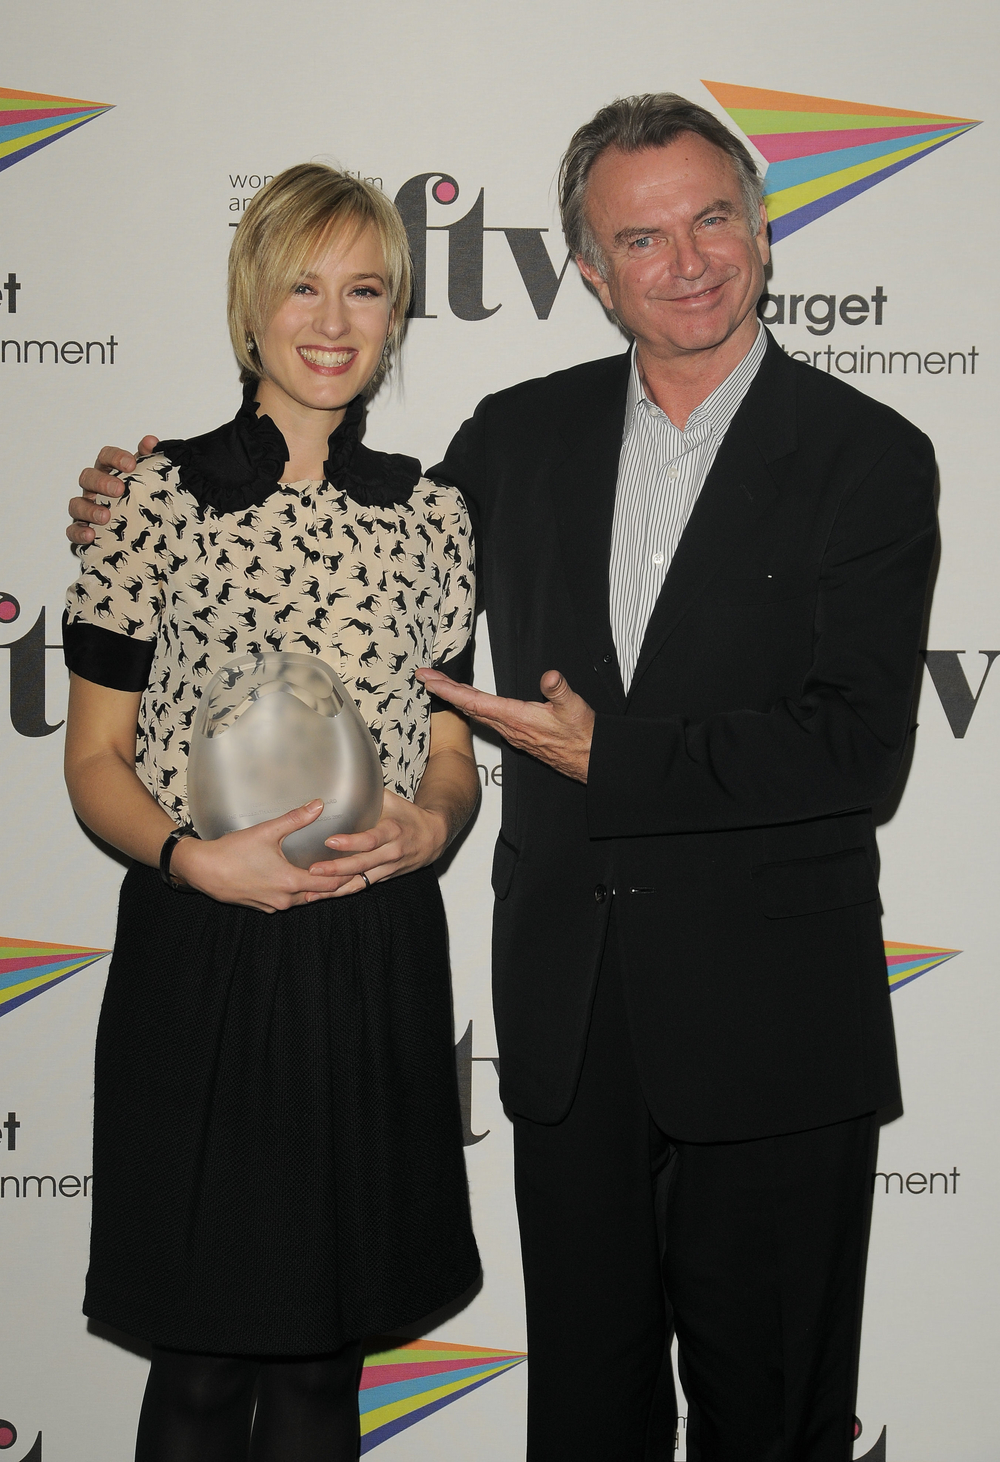 Sam Neil presents TalkbackThames new talent award to Rebekah Gilbertson, at the Women in Film and TV Awards, 2008